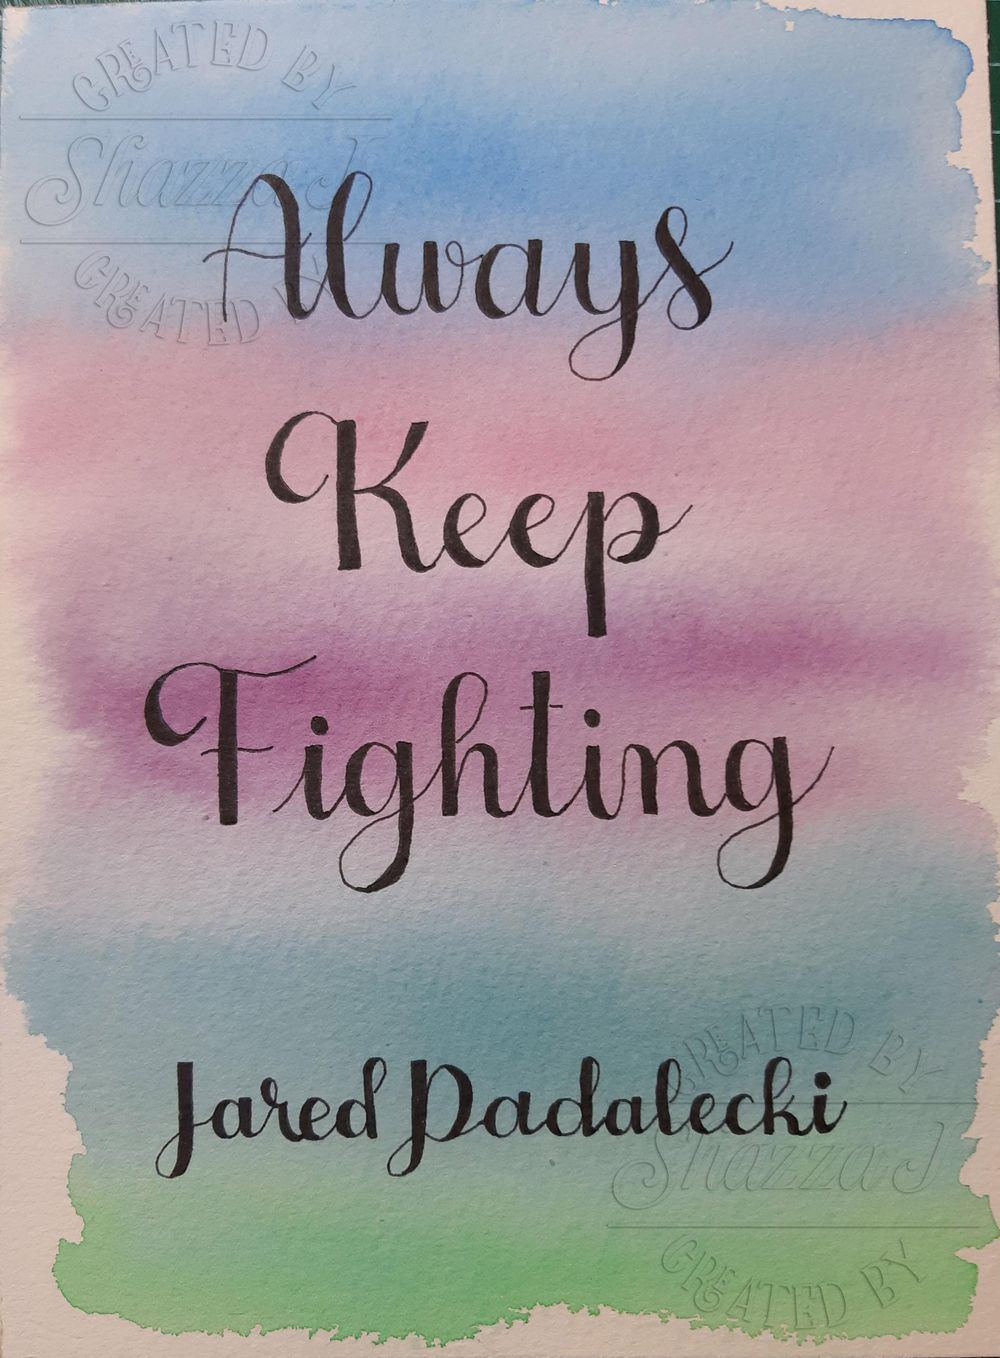 Always Keep Fighting - image 1 - student project